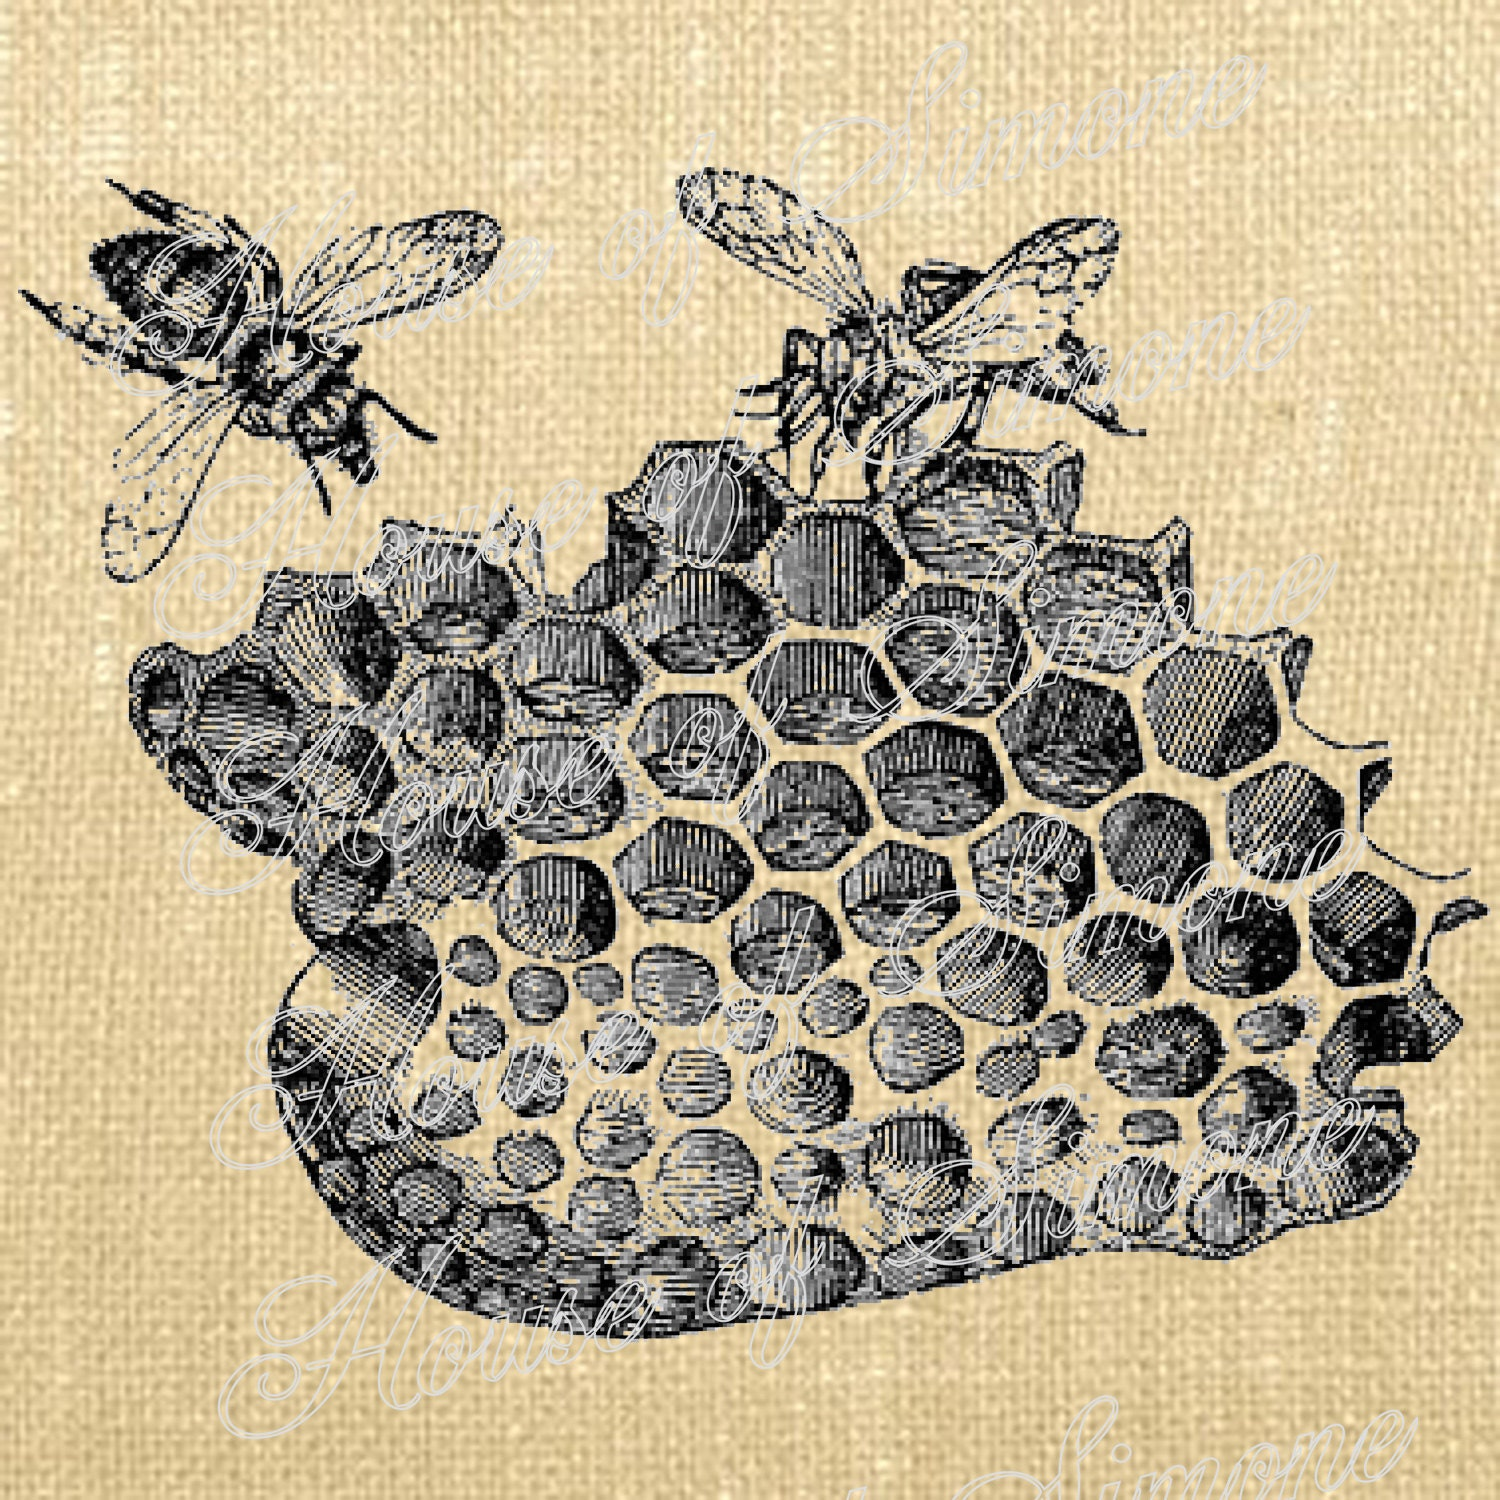 Bee Beehive Insects Honeycomb Vintage Download Graphic Image